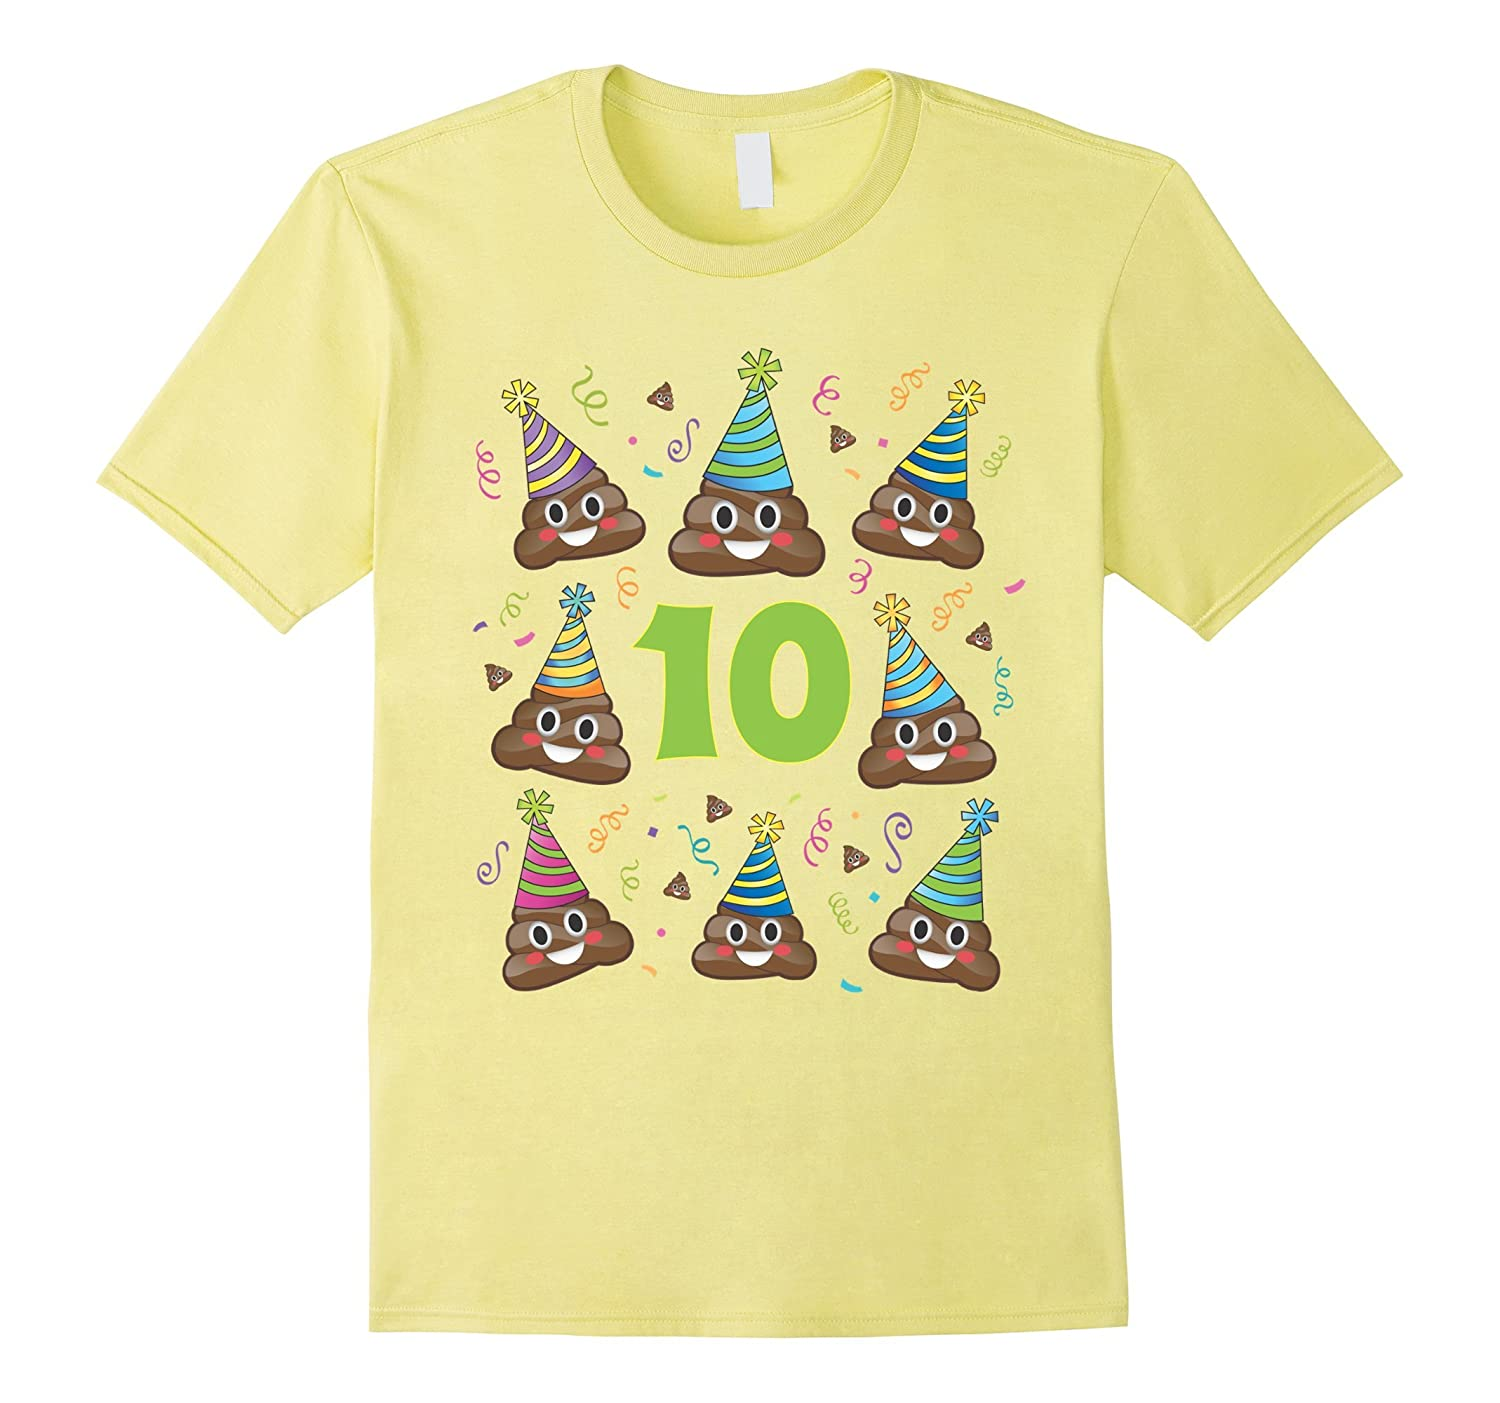 Poop Emoji Birthday Shirt 10 Ten Year Old Girl Boy Party PJ RT